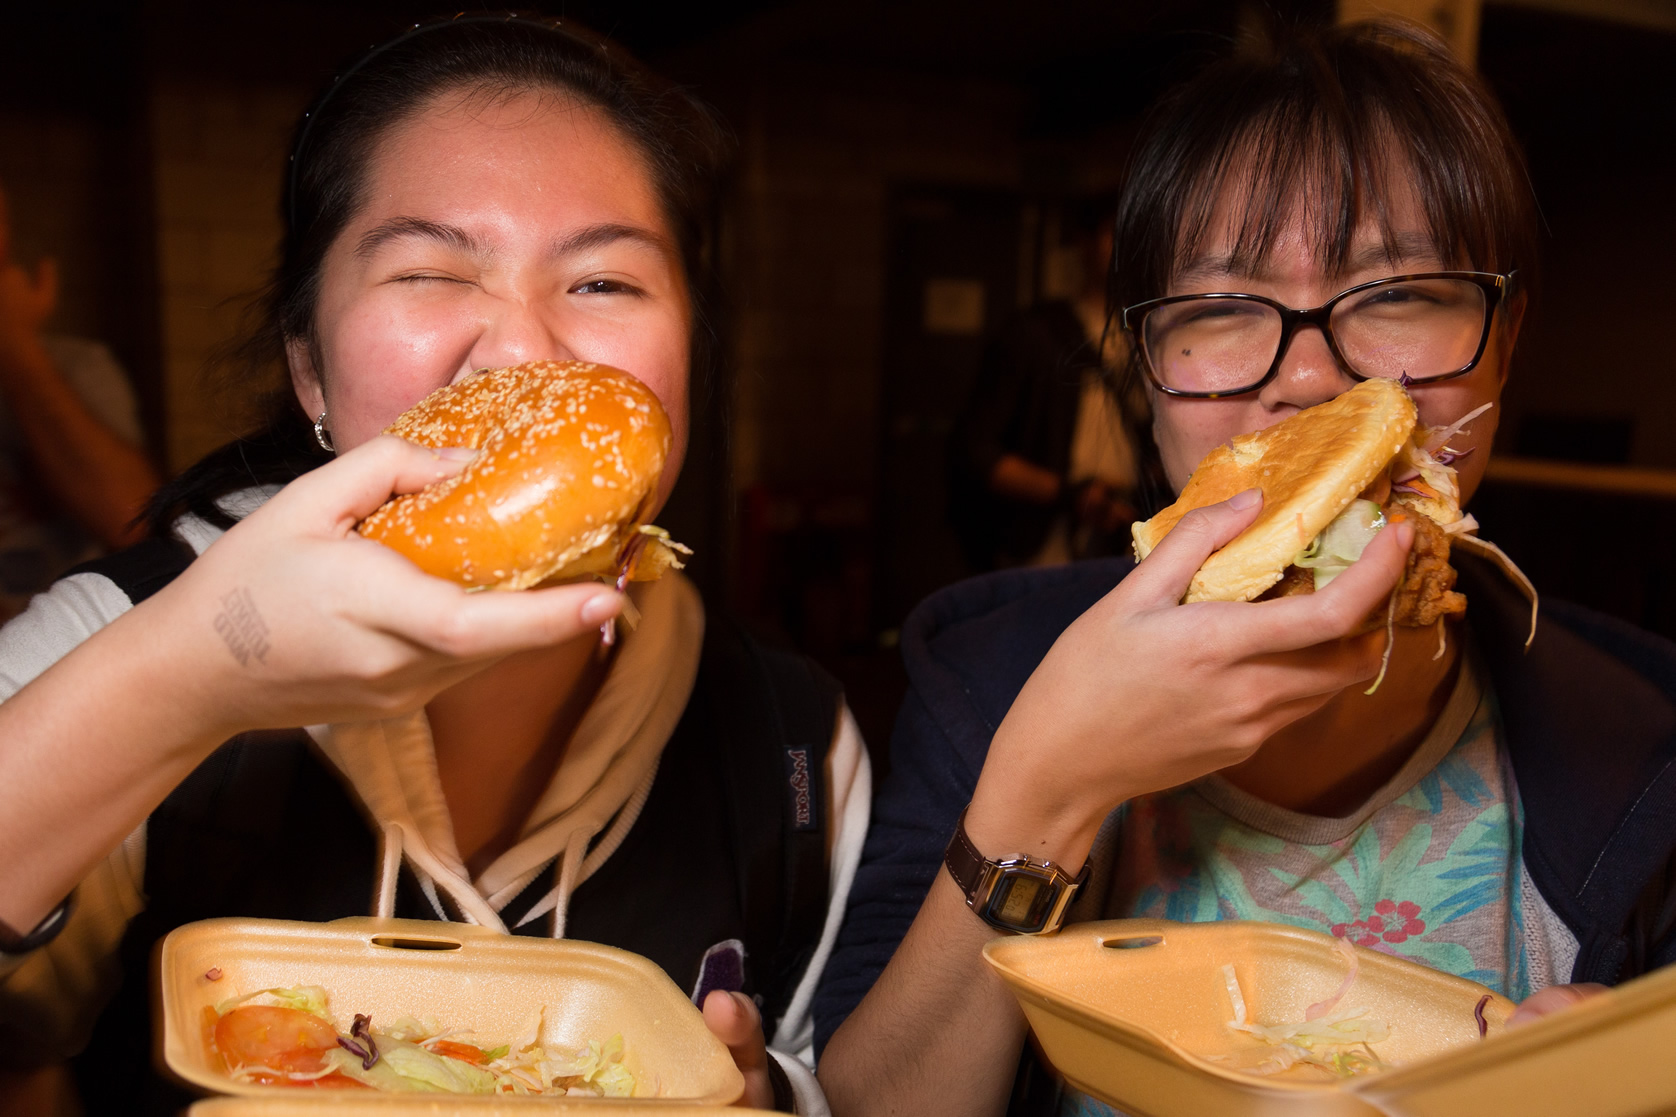 FridayFoodFight is Back for Good in 2015